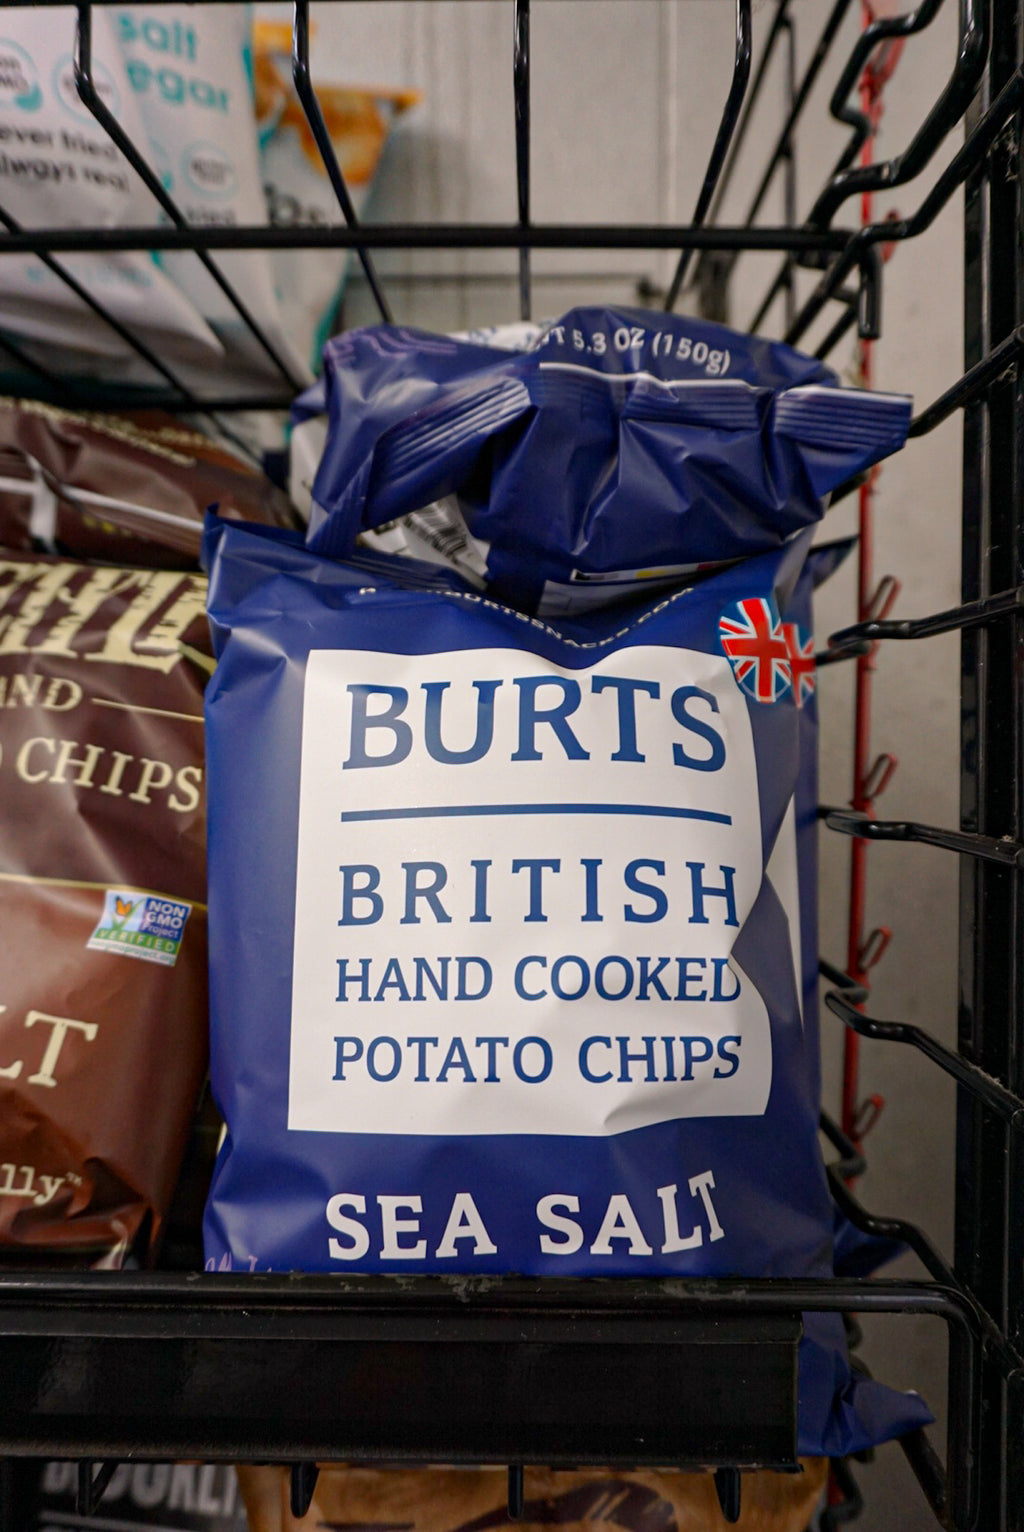 Burts British Hand Cooked Potato Chips Sea Salt - New Canaan